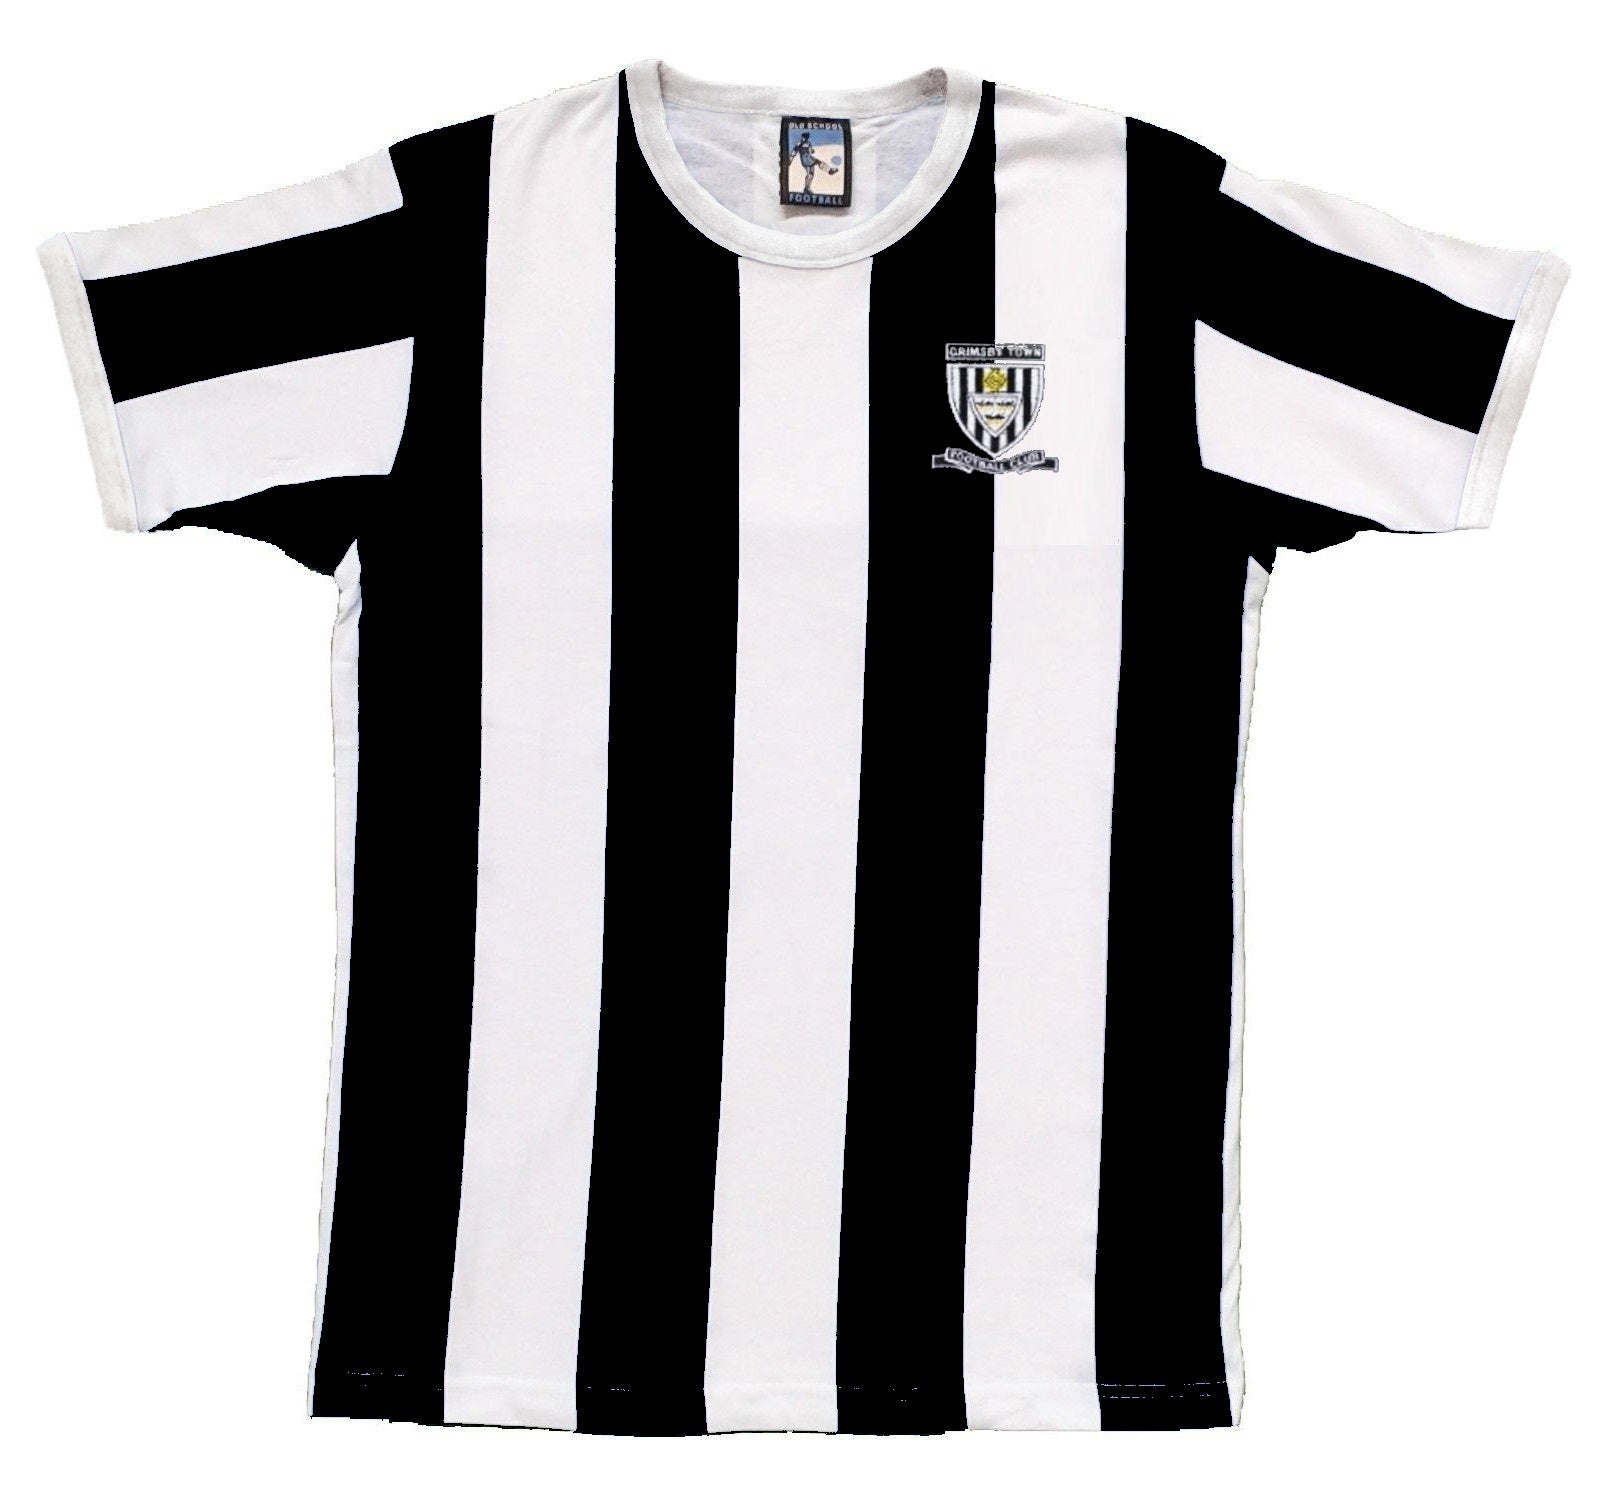 Grimsby Town Retro Football T Shirt 1971 - 1972 - Old School Football